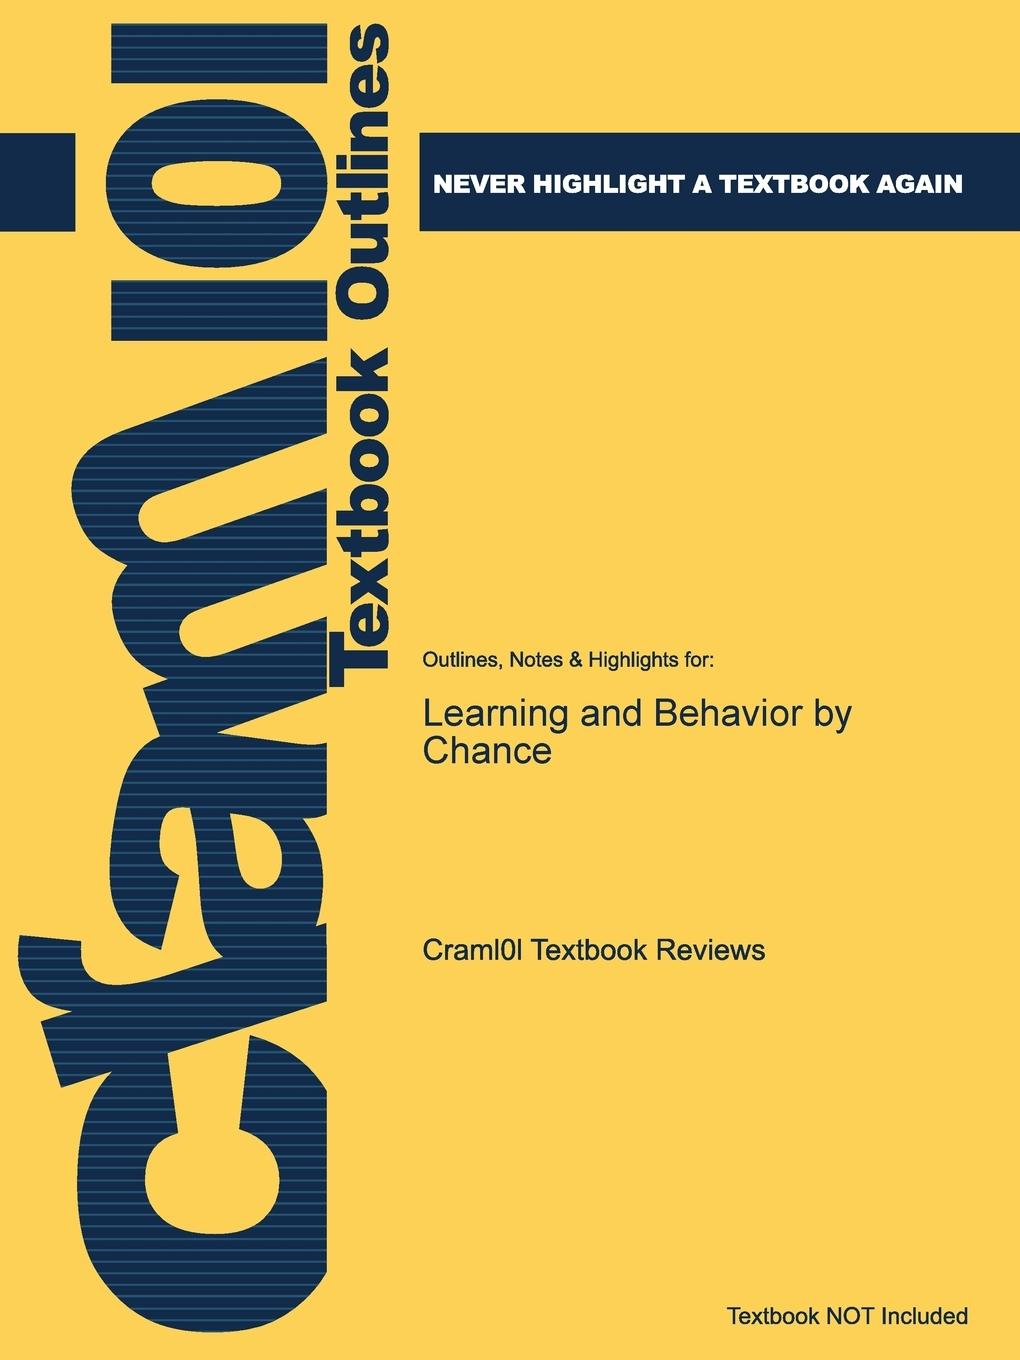 Outlines & Highlights for Learning and Behavior by Chance